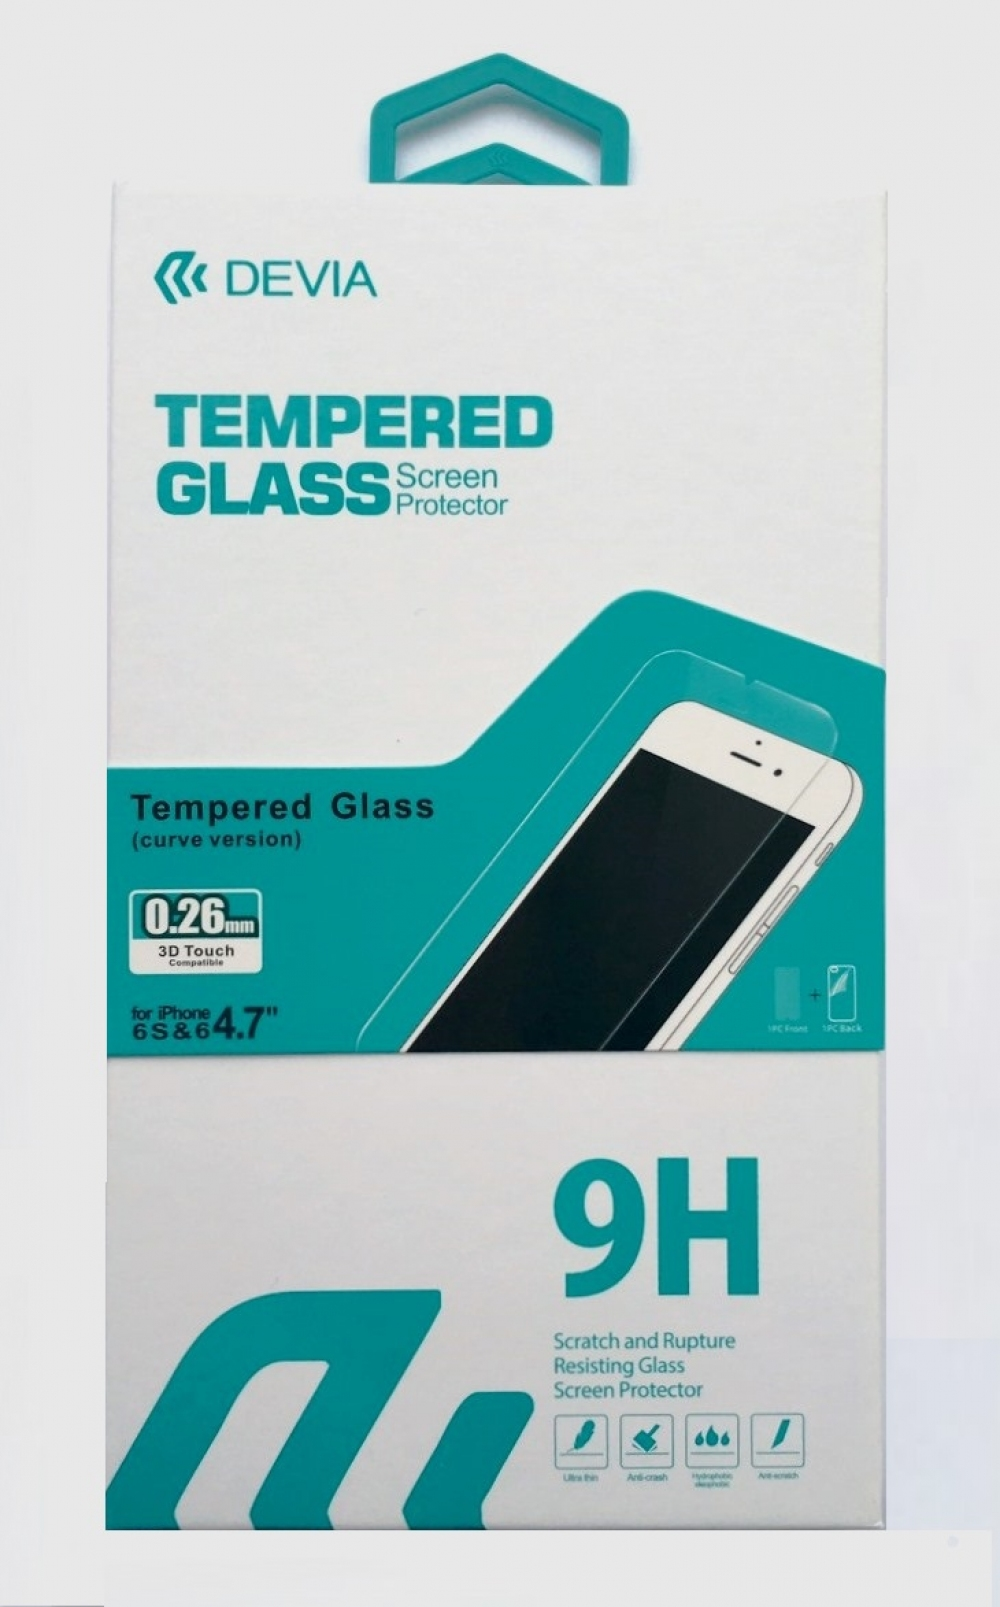 Devia Tempered Glass for iPhone 6/6S